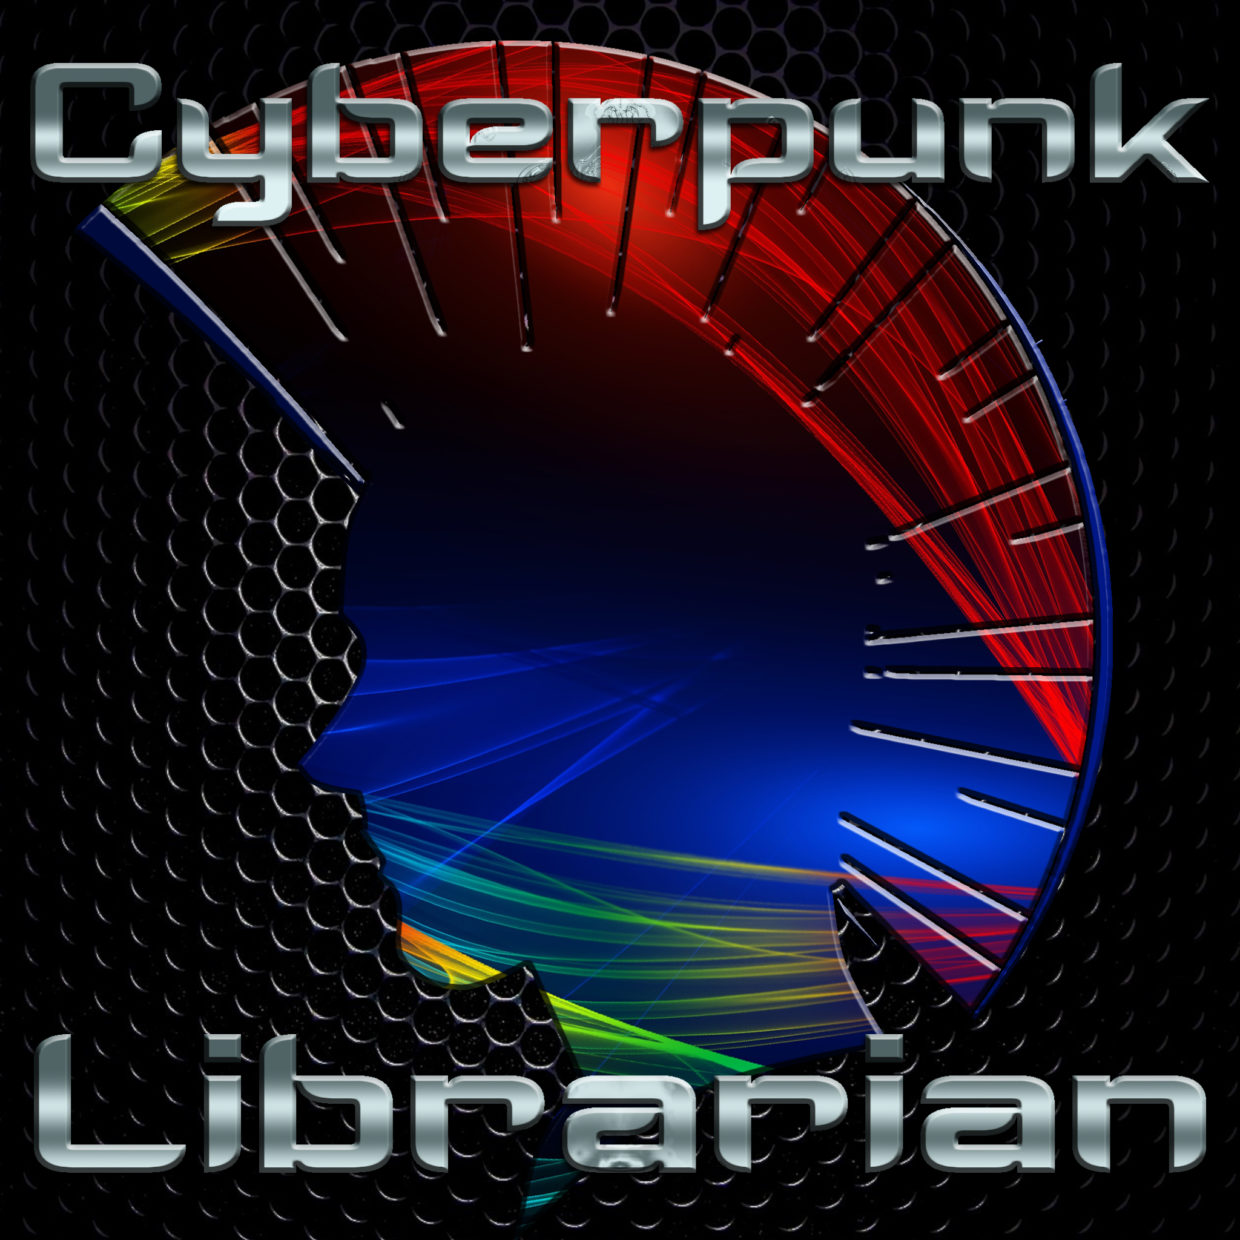 Cyberpunk Librarian podcast logo